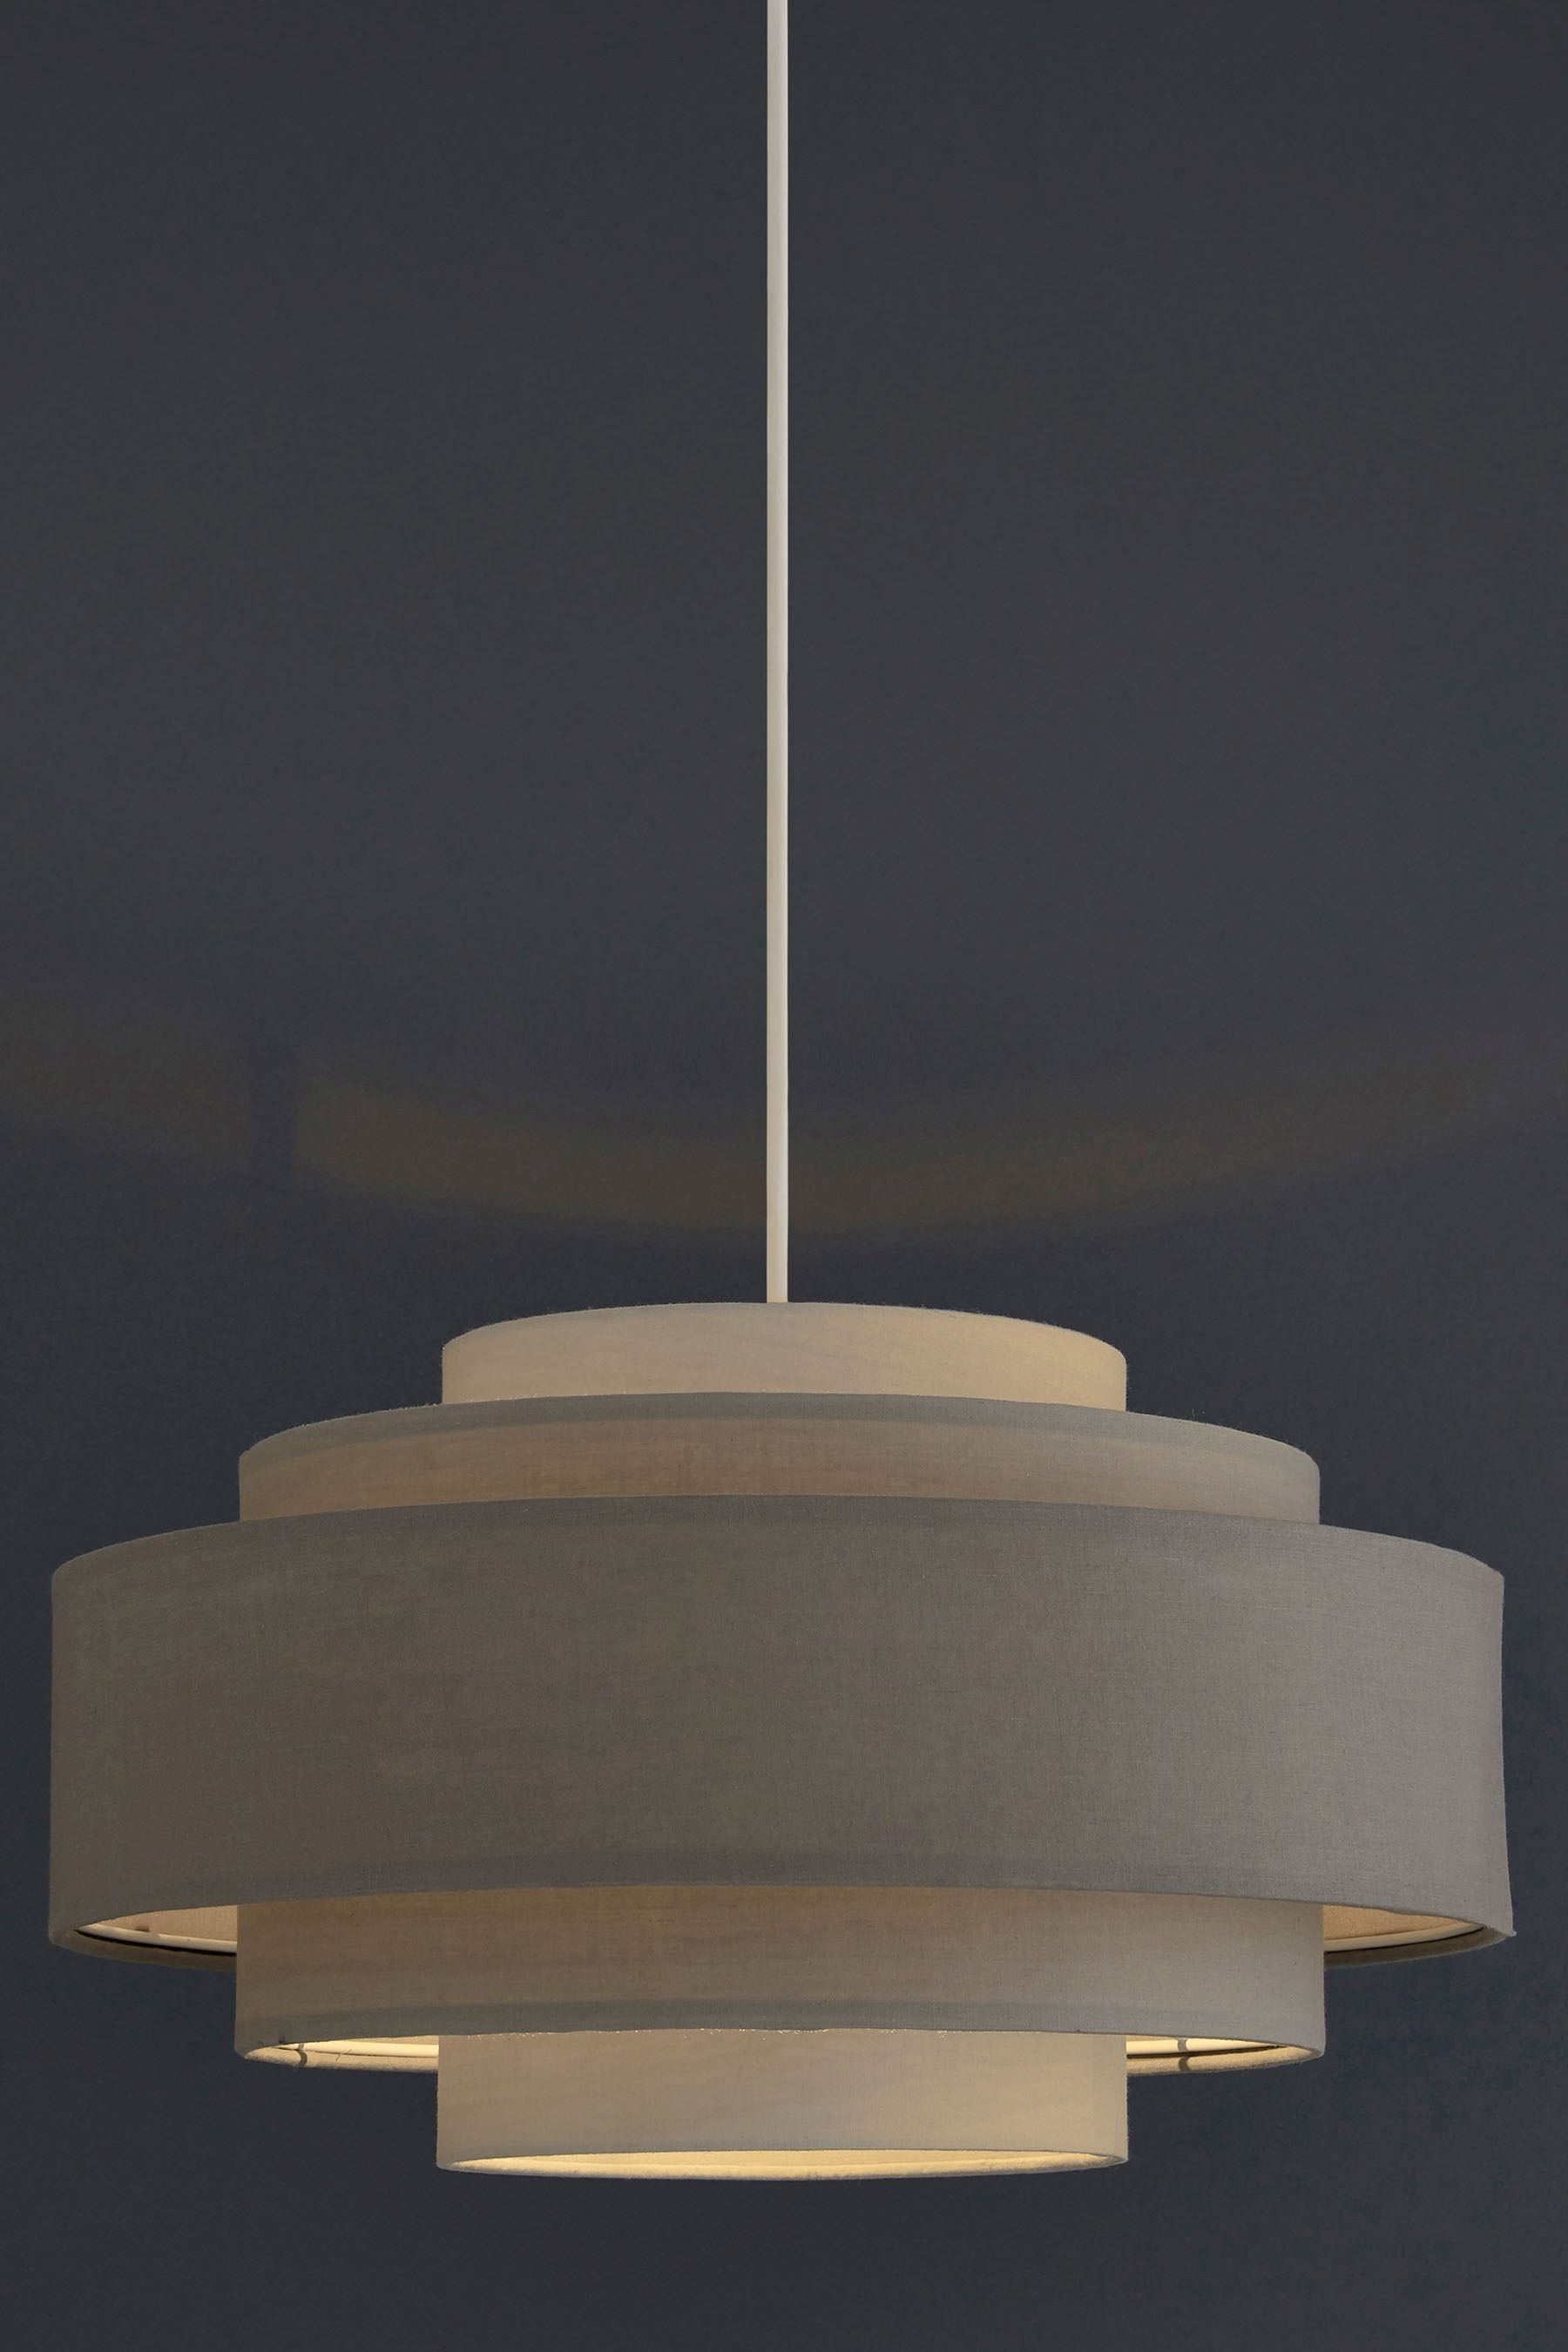 Buy Grey Easy Fit 5 Tier Shade from the Next UK online shop · Hallway LightingJungle ... & Buy Grey Easy Fit 5 Tier Shade from the Next UK online shop ... azcodes.com